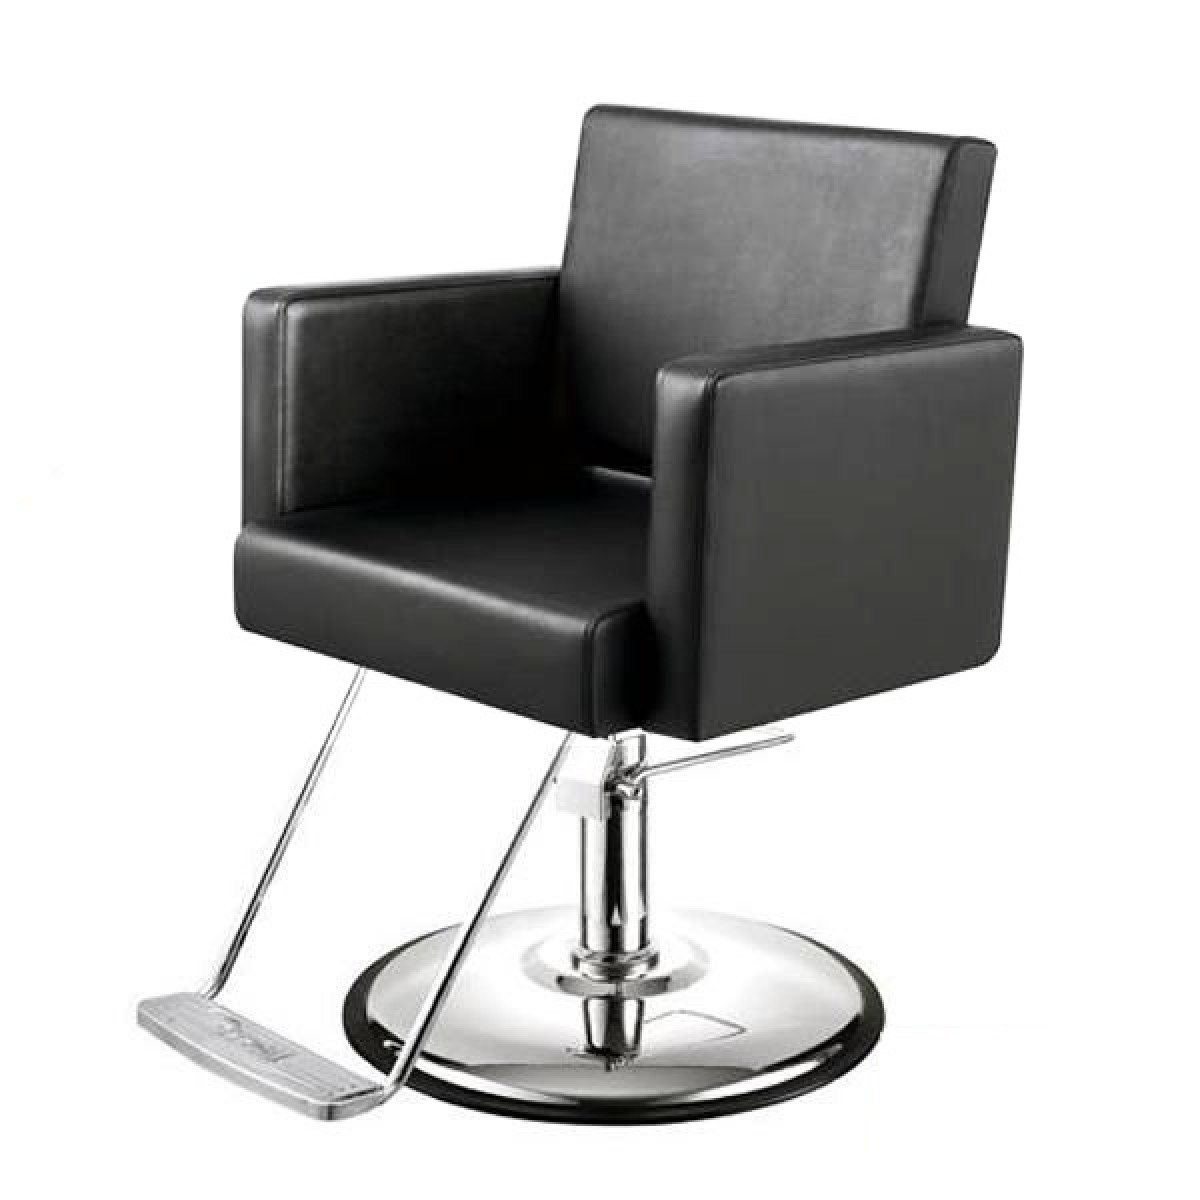 Canon salon styling chair salon chairs styling chairs for Salon furniture